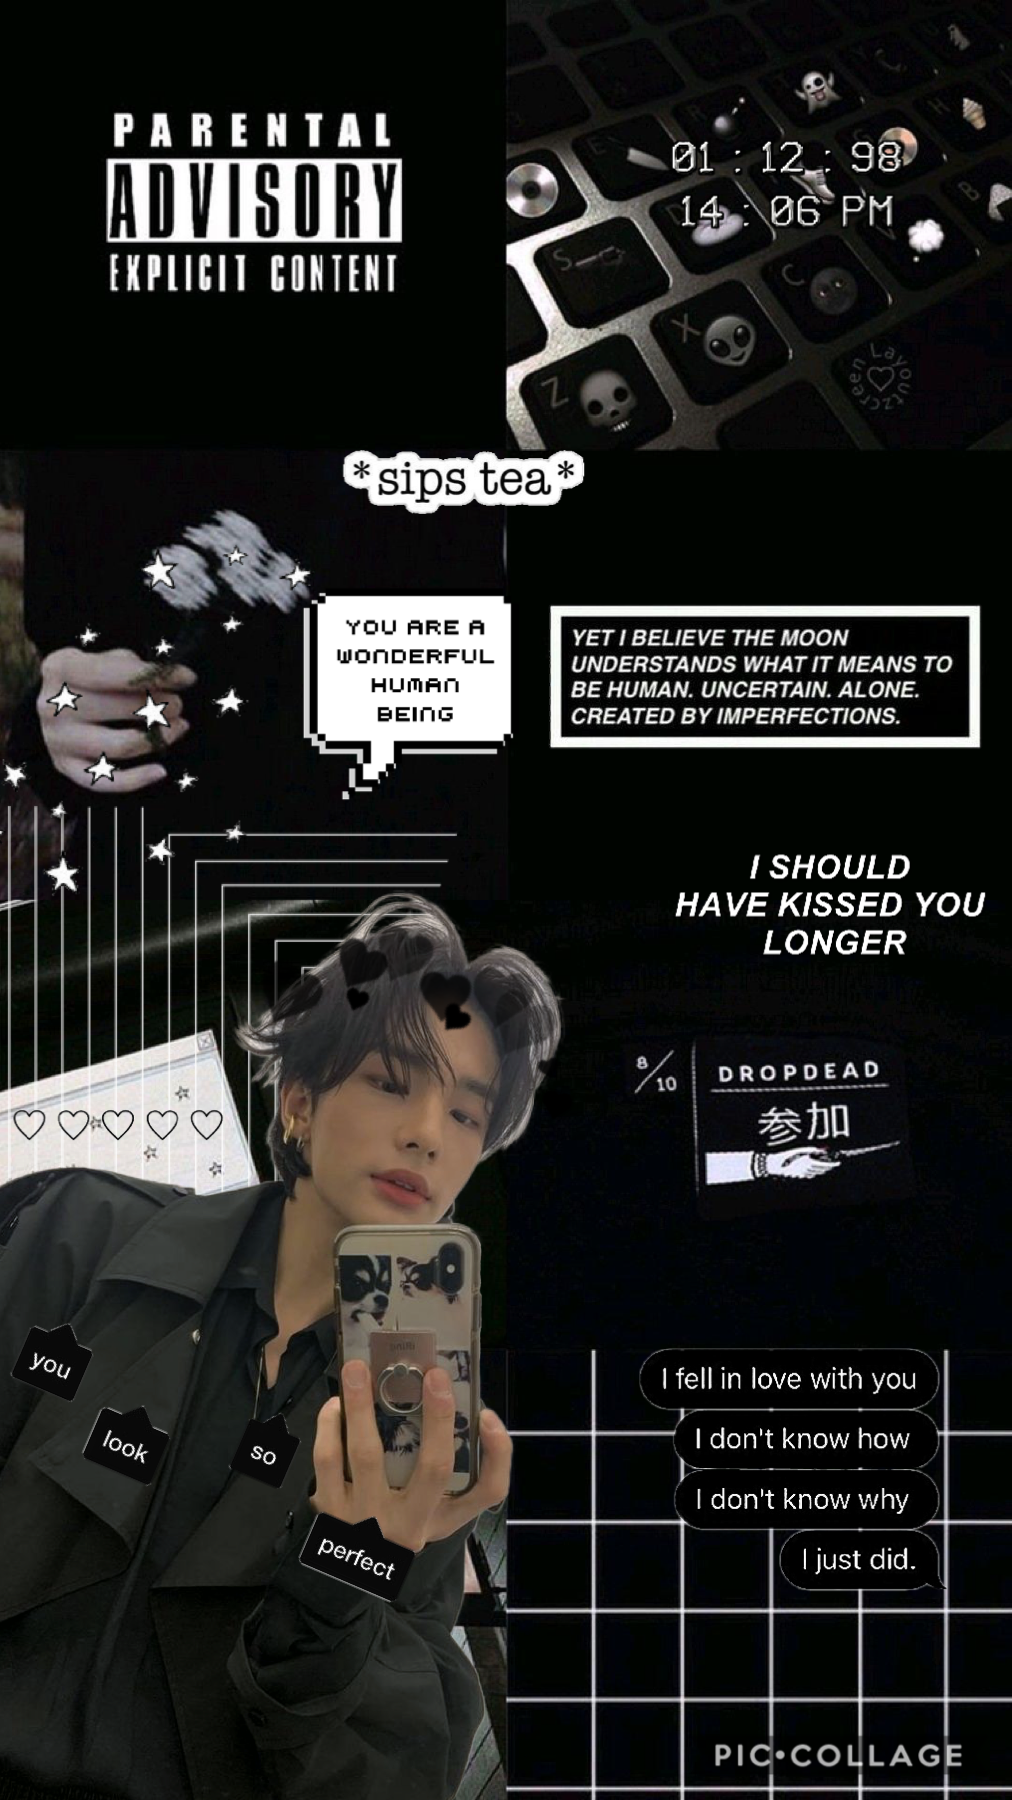 ☆*:.。.tap.。.:*☆ hwang hyunjin <3 im pretty proud of this and i think it turned out pretty well :)